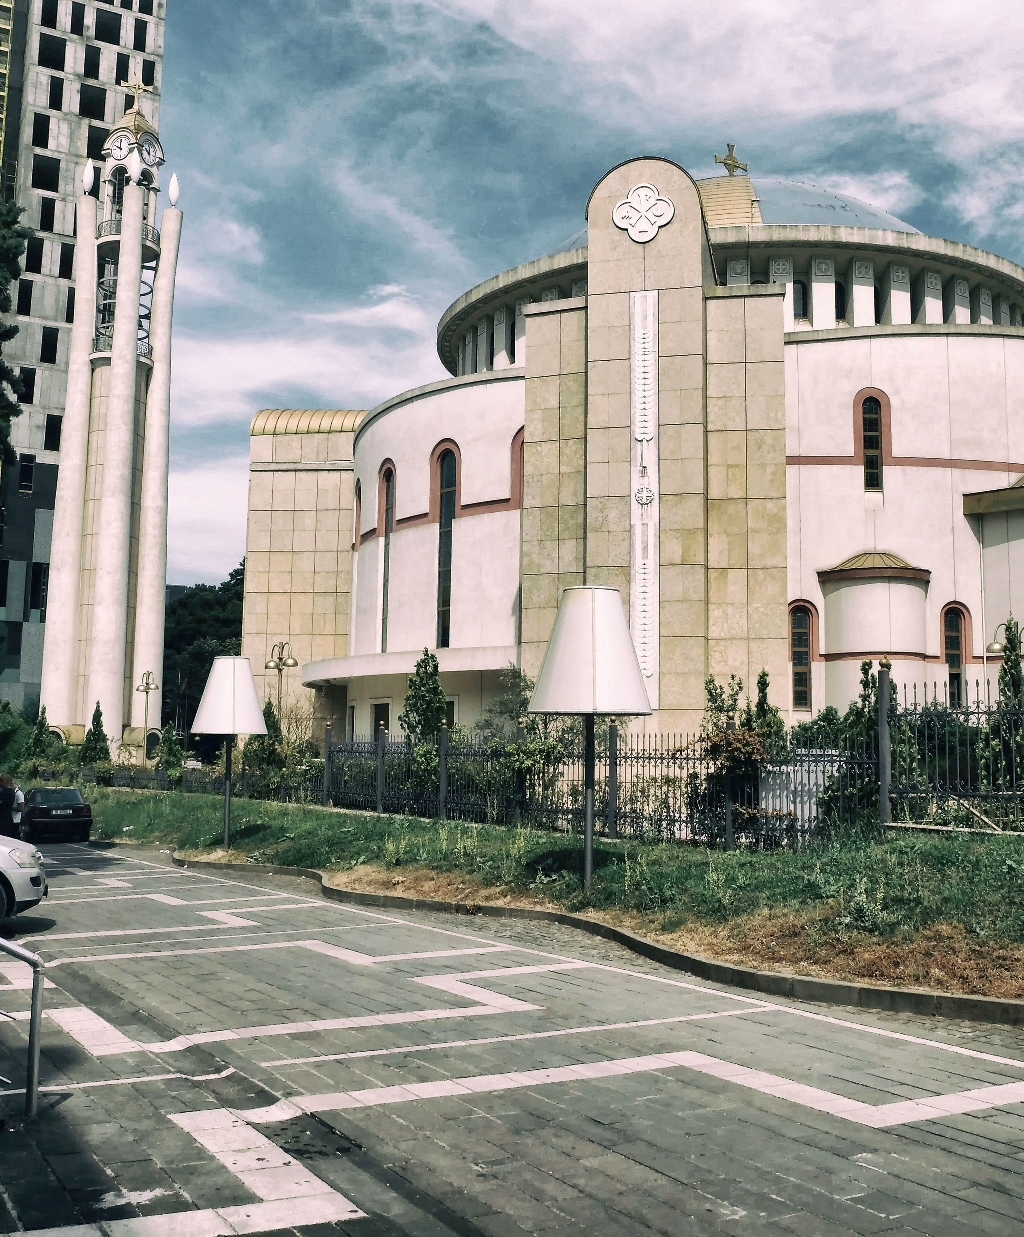 The Resurrection Cathedral in Tirana